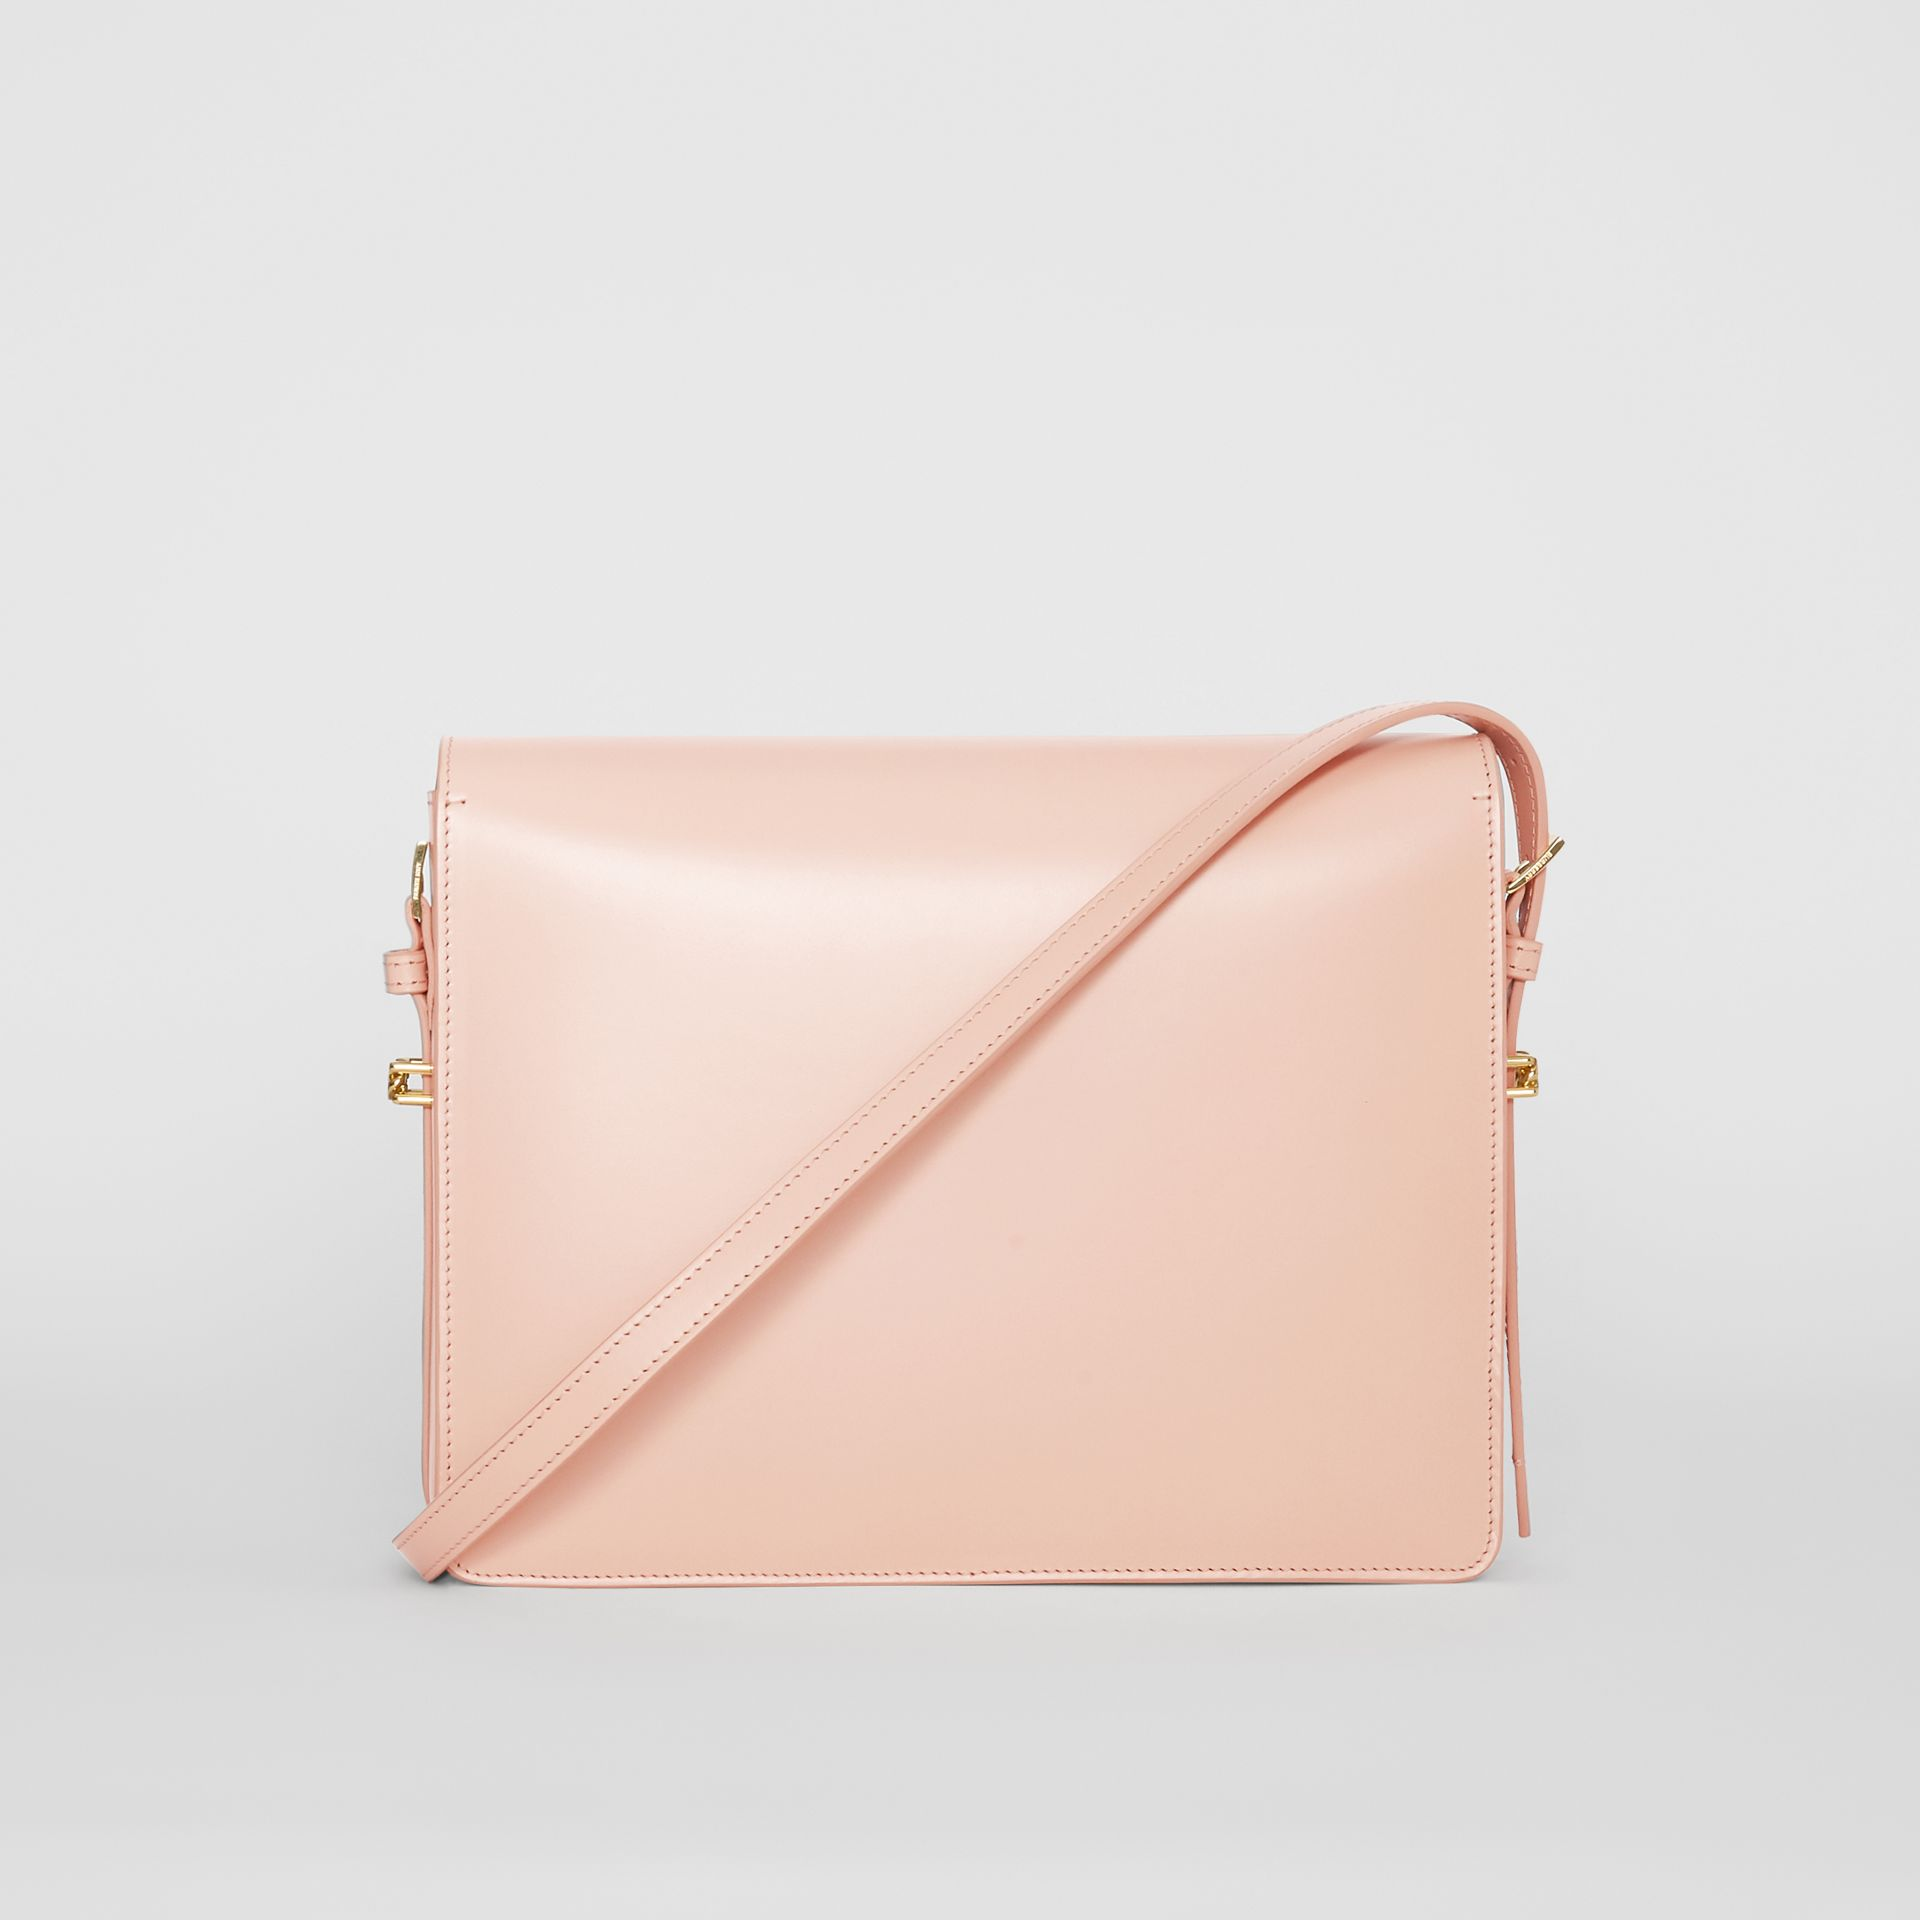 Large Leather Grace Bag in Soft Blush - Women | Burberry United States - gallery image 7